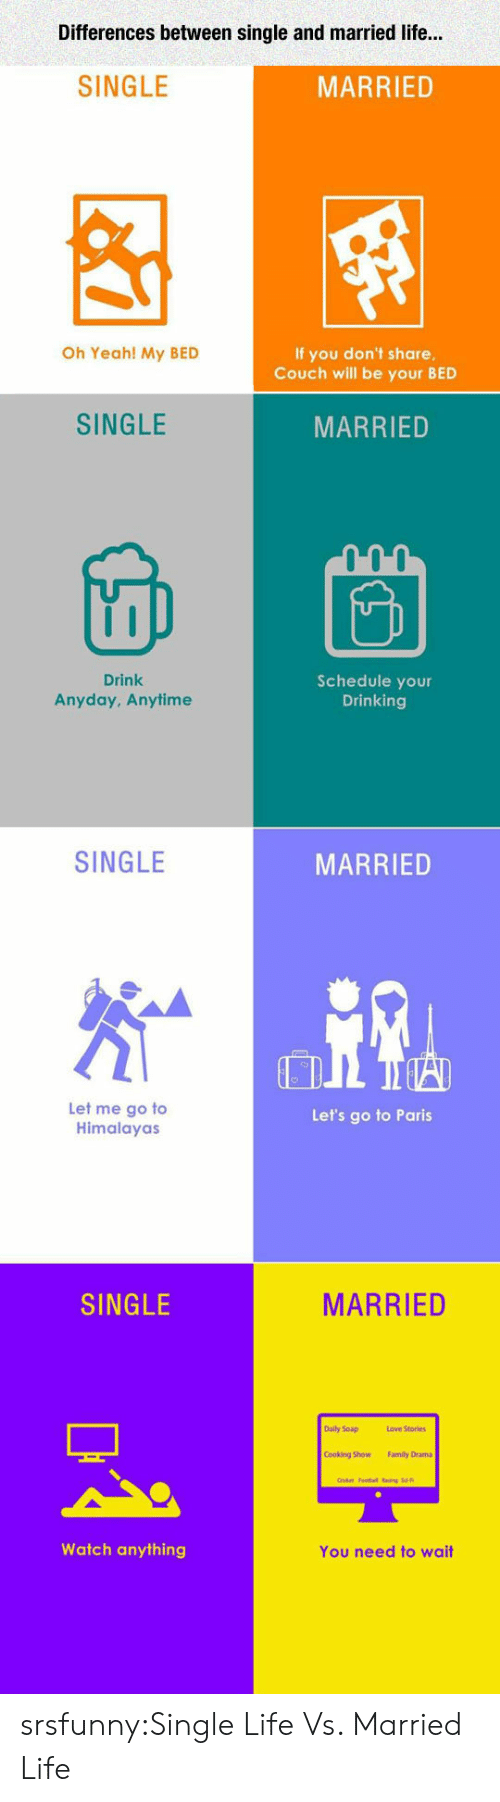 Married Life: Differences between single and married life...  SINGLE  MARRIED  Oh Yeah! My BED  If you don't share  Couch will be your BED  SINGLE  MARRIED  Drink  Anyday, Anytimee  Schedule your  Drinking  SINGLE  MARRIED  Let me go to  Himalayas  Let's go to Paris  SINGLE  MARRIED  Daily Soap  Love Stories  Cooking Sow  Family Dram  Watch anything  You need to wait srsfunny:Single Life Vs. Married Life